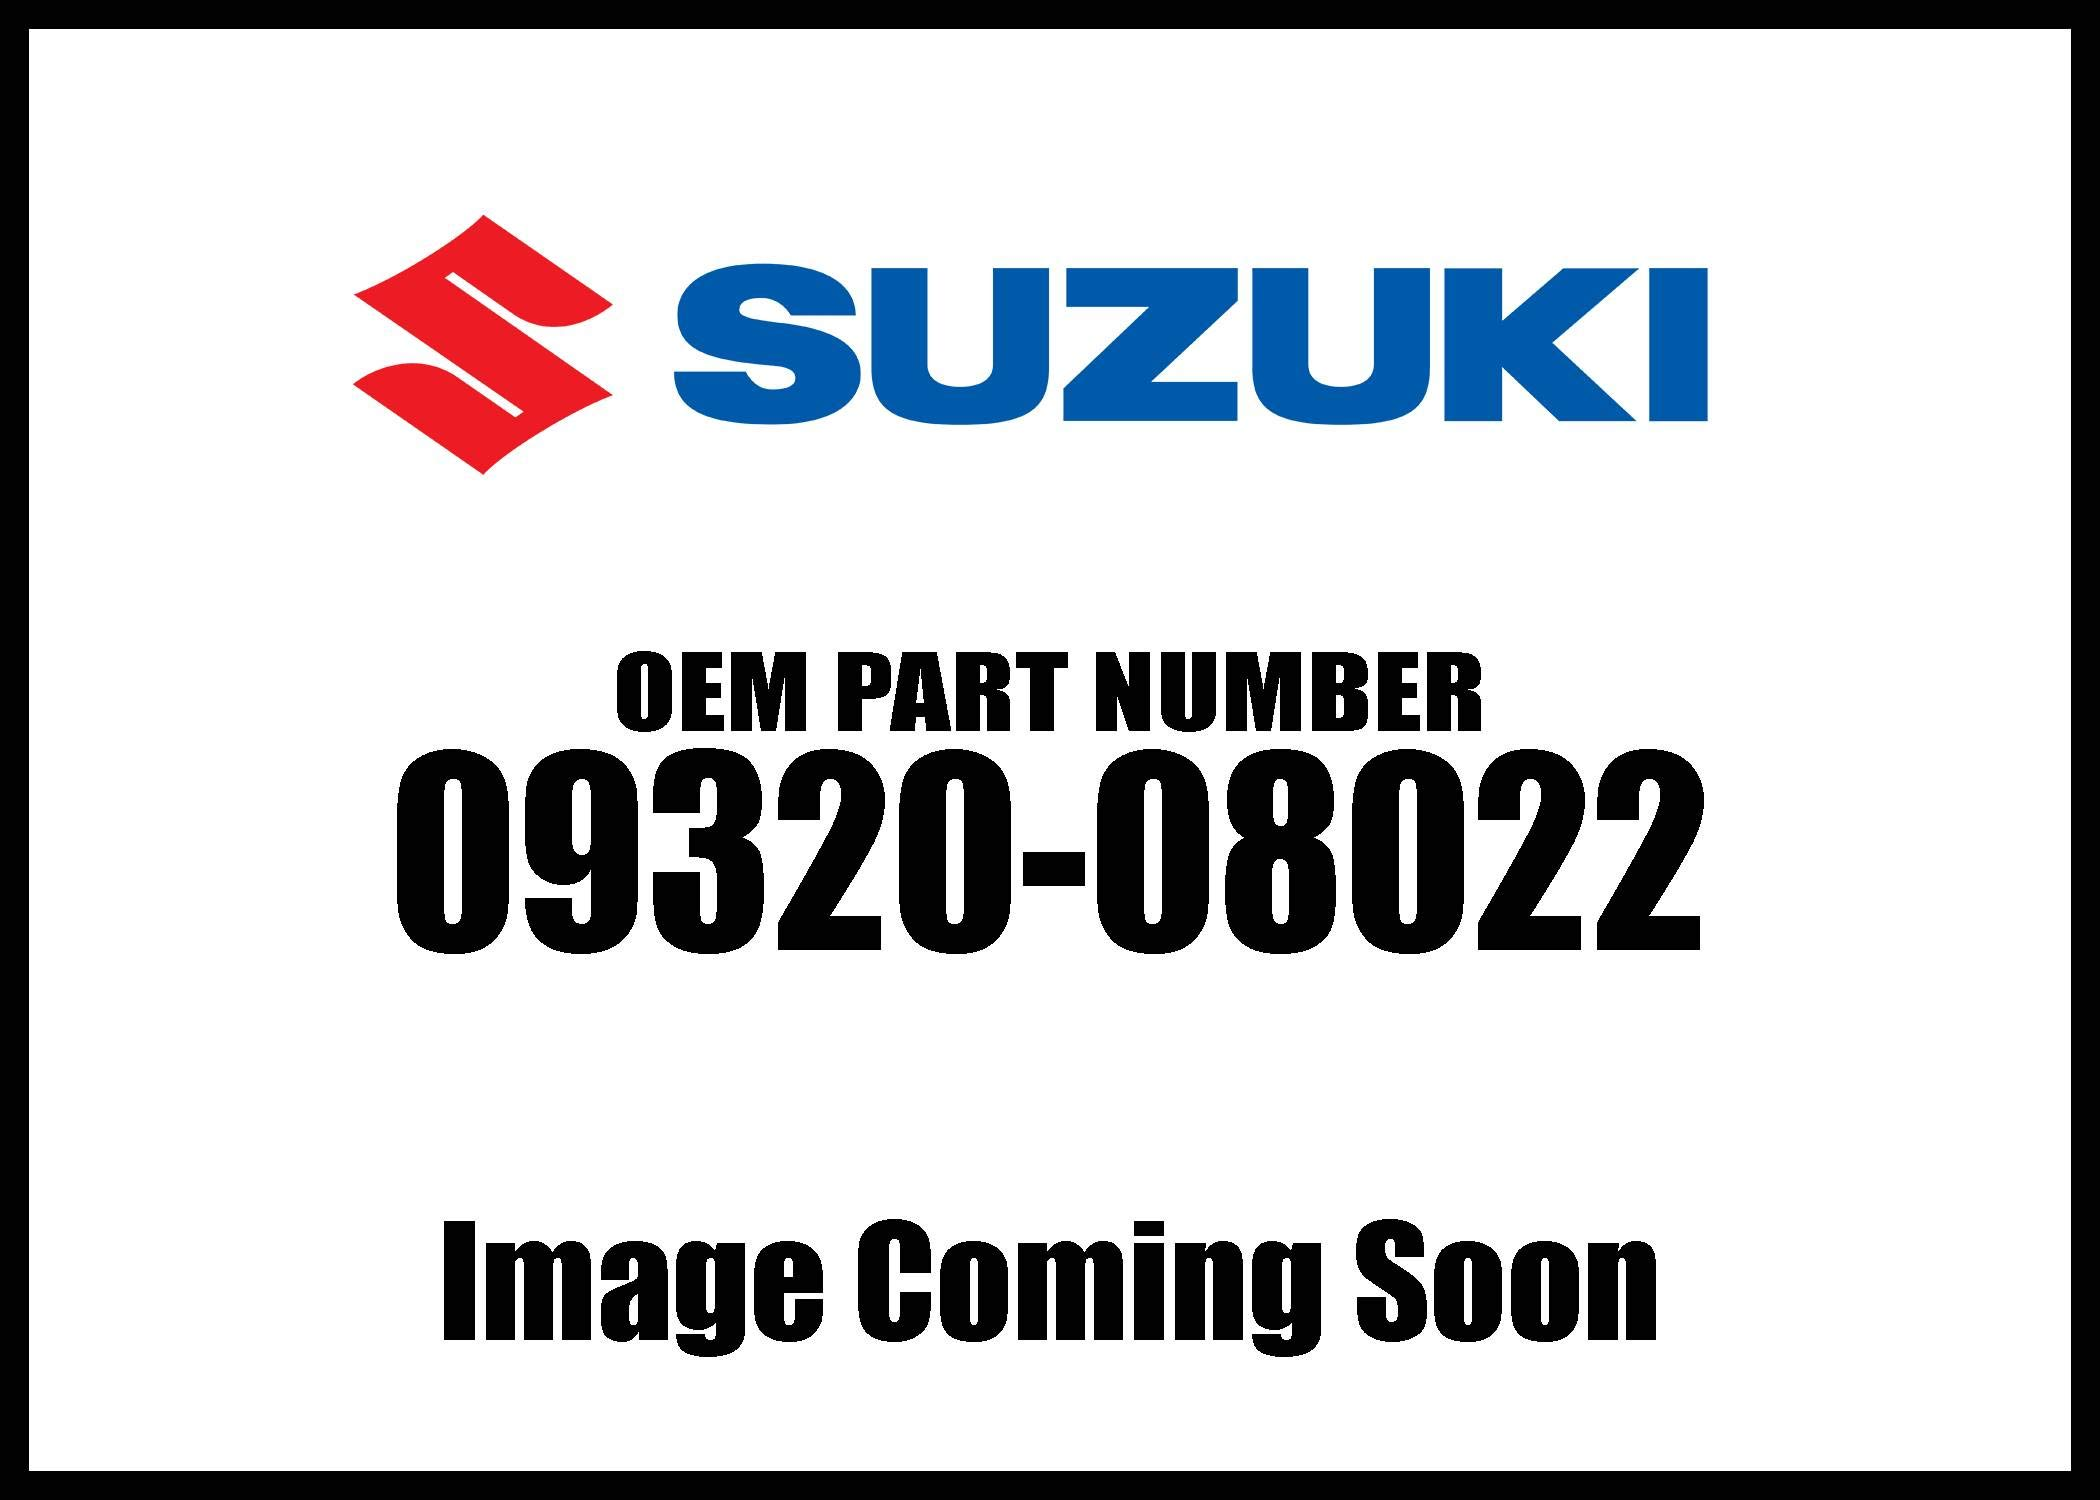 Suzuki Cushion Battery 09320-08022 New Oem